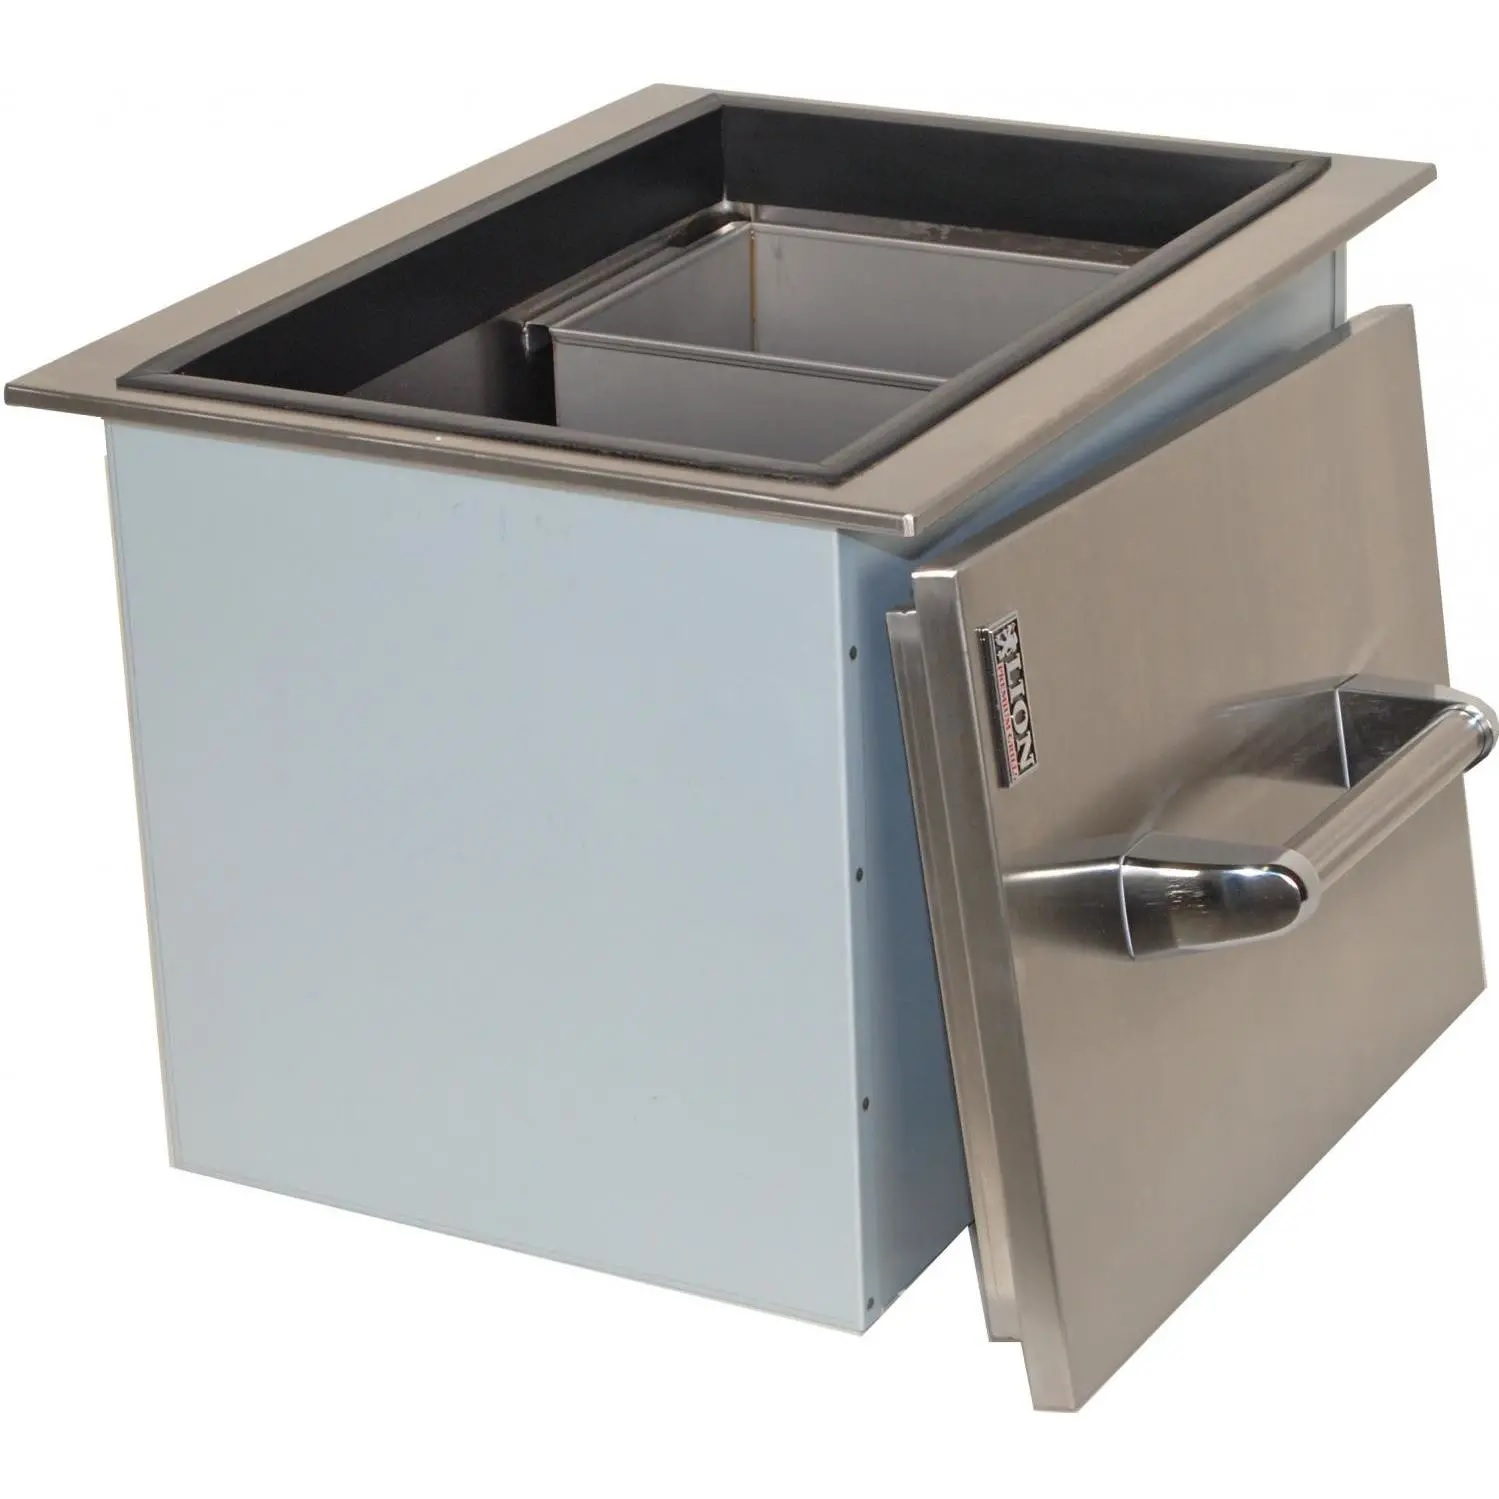 Stainless Steel Ice Bin Cooler/Wine Chiller in Outdoor Cabinets 3